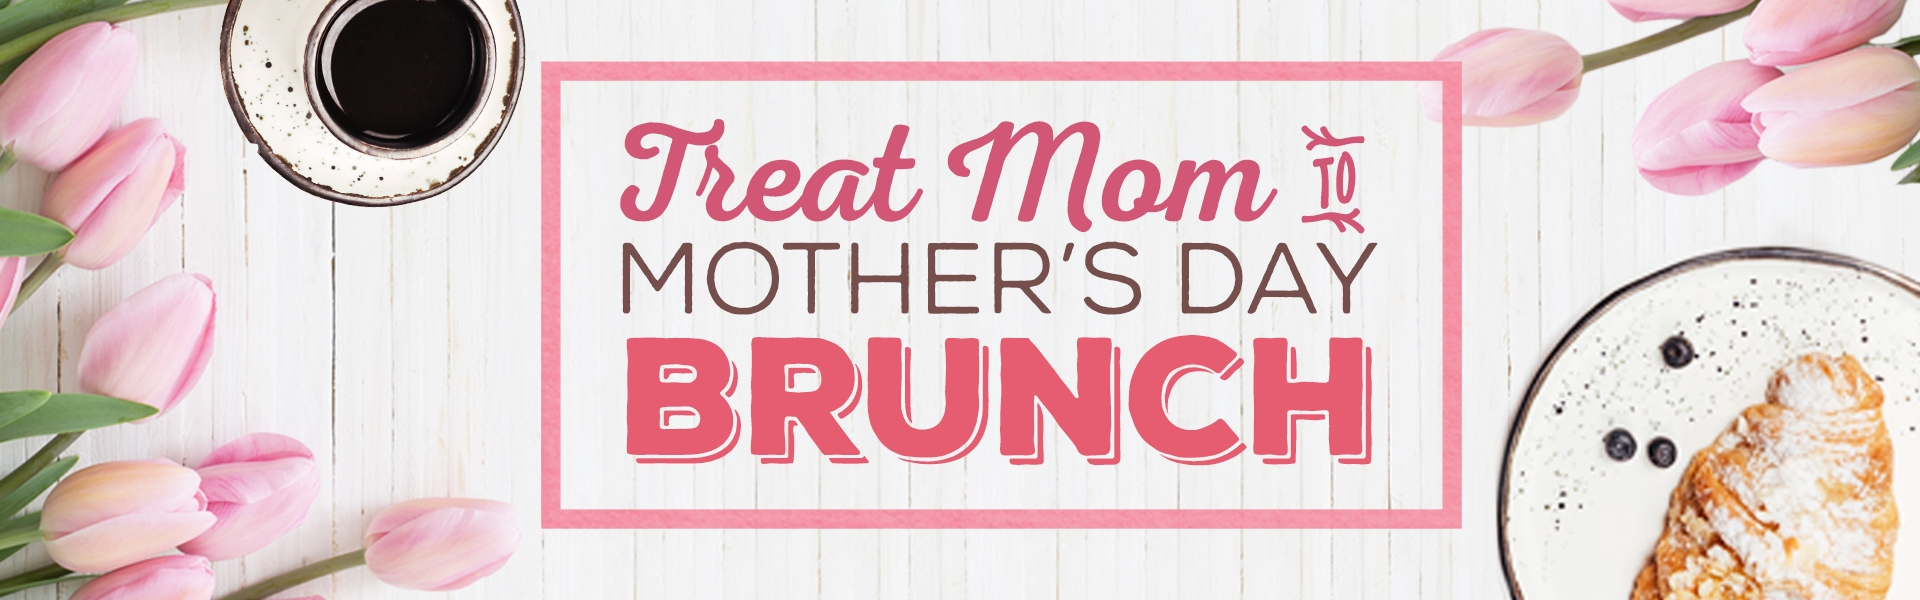 spre mothers day brunch - 1920×600